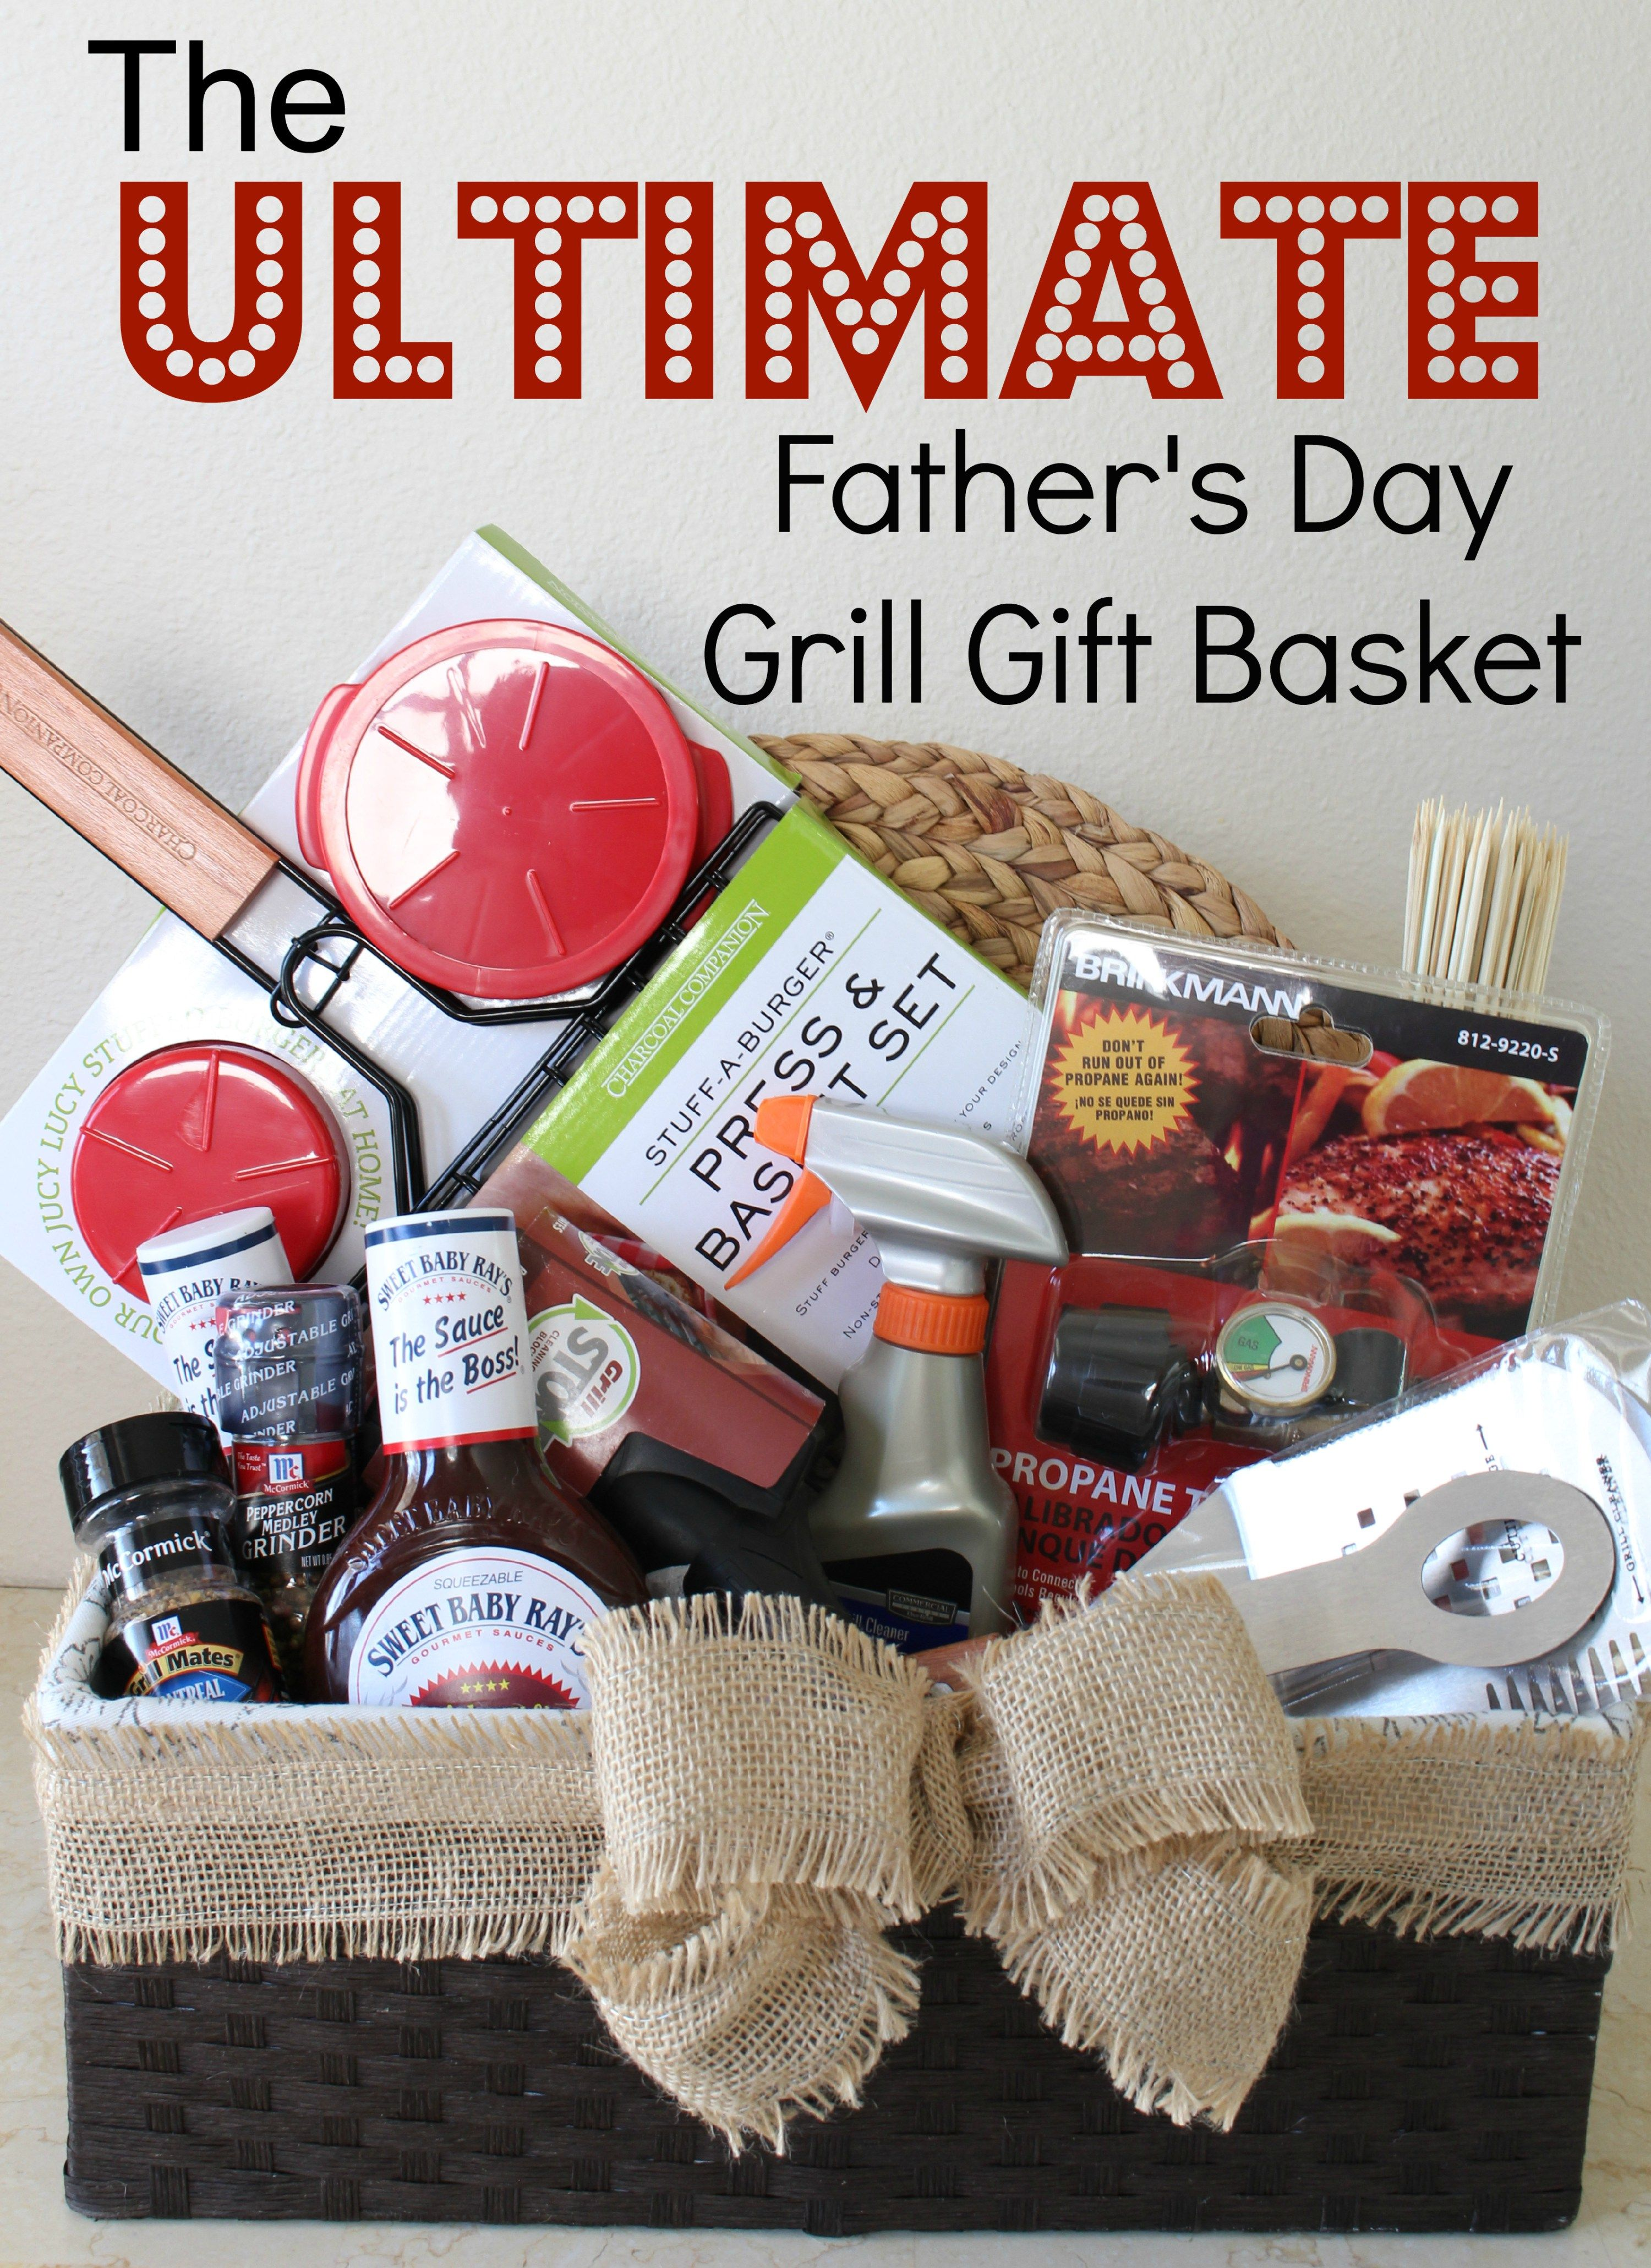 The ultimate fathers day grill gift basket gifts for him grillmaster items diy for a manly gift basket via a girl in paradise do it yourself gift baskets ideas for all occasions perfect for christmas solutioingenieria Image collections